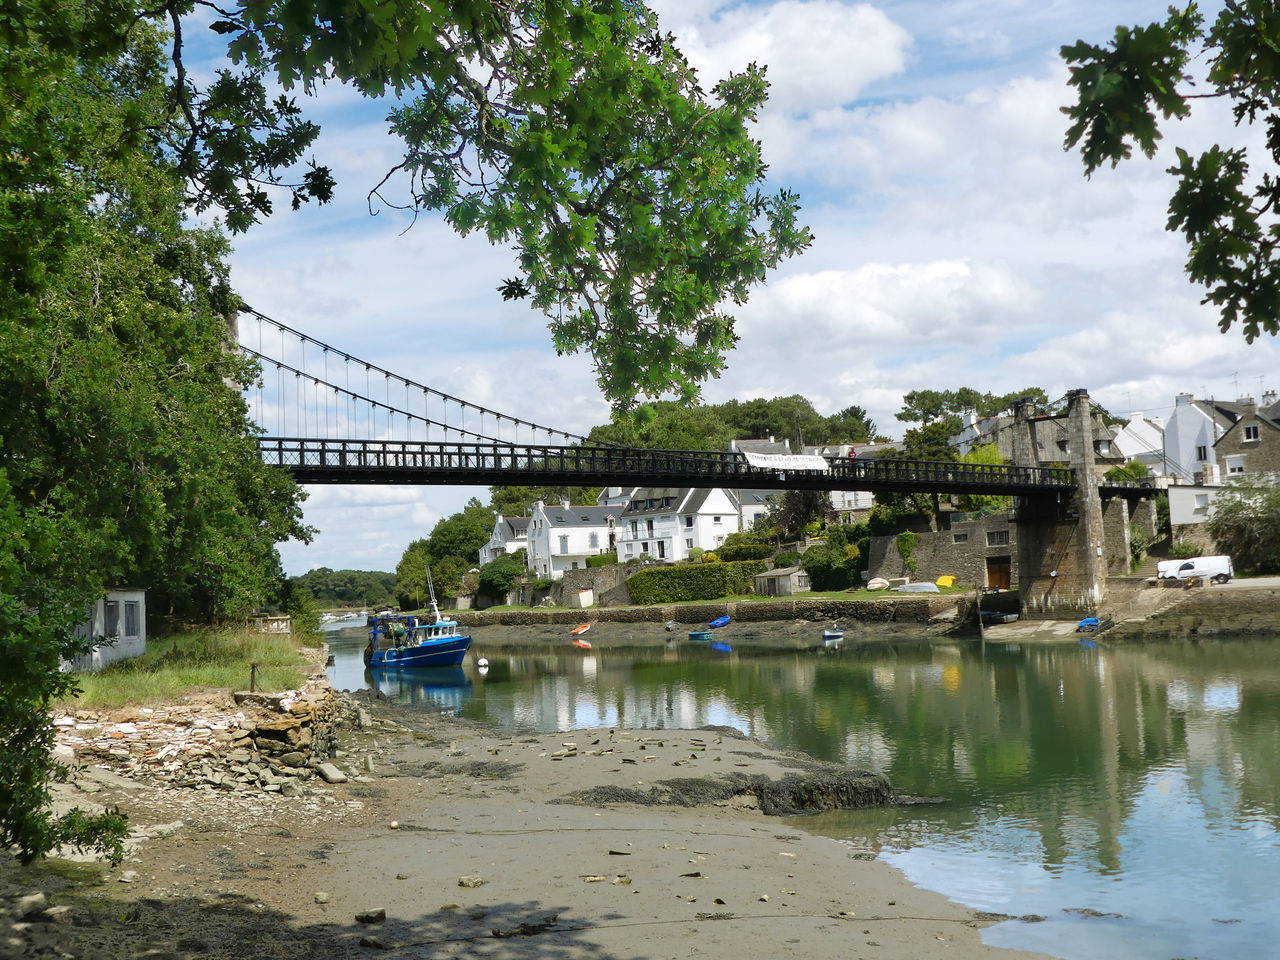 water, built structure, architecture, bridge, connection, sky, cloud - sky, bridge - man made structure, transportation, tree, river, plant, nature, day, reflection, engineering, building exterior, outdoors, arch bridge